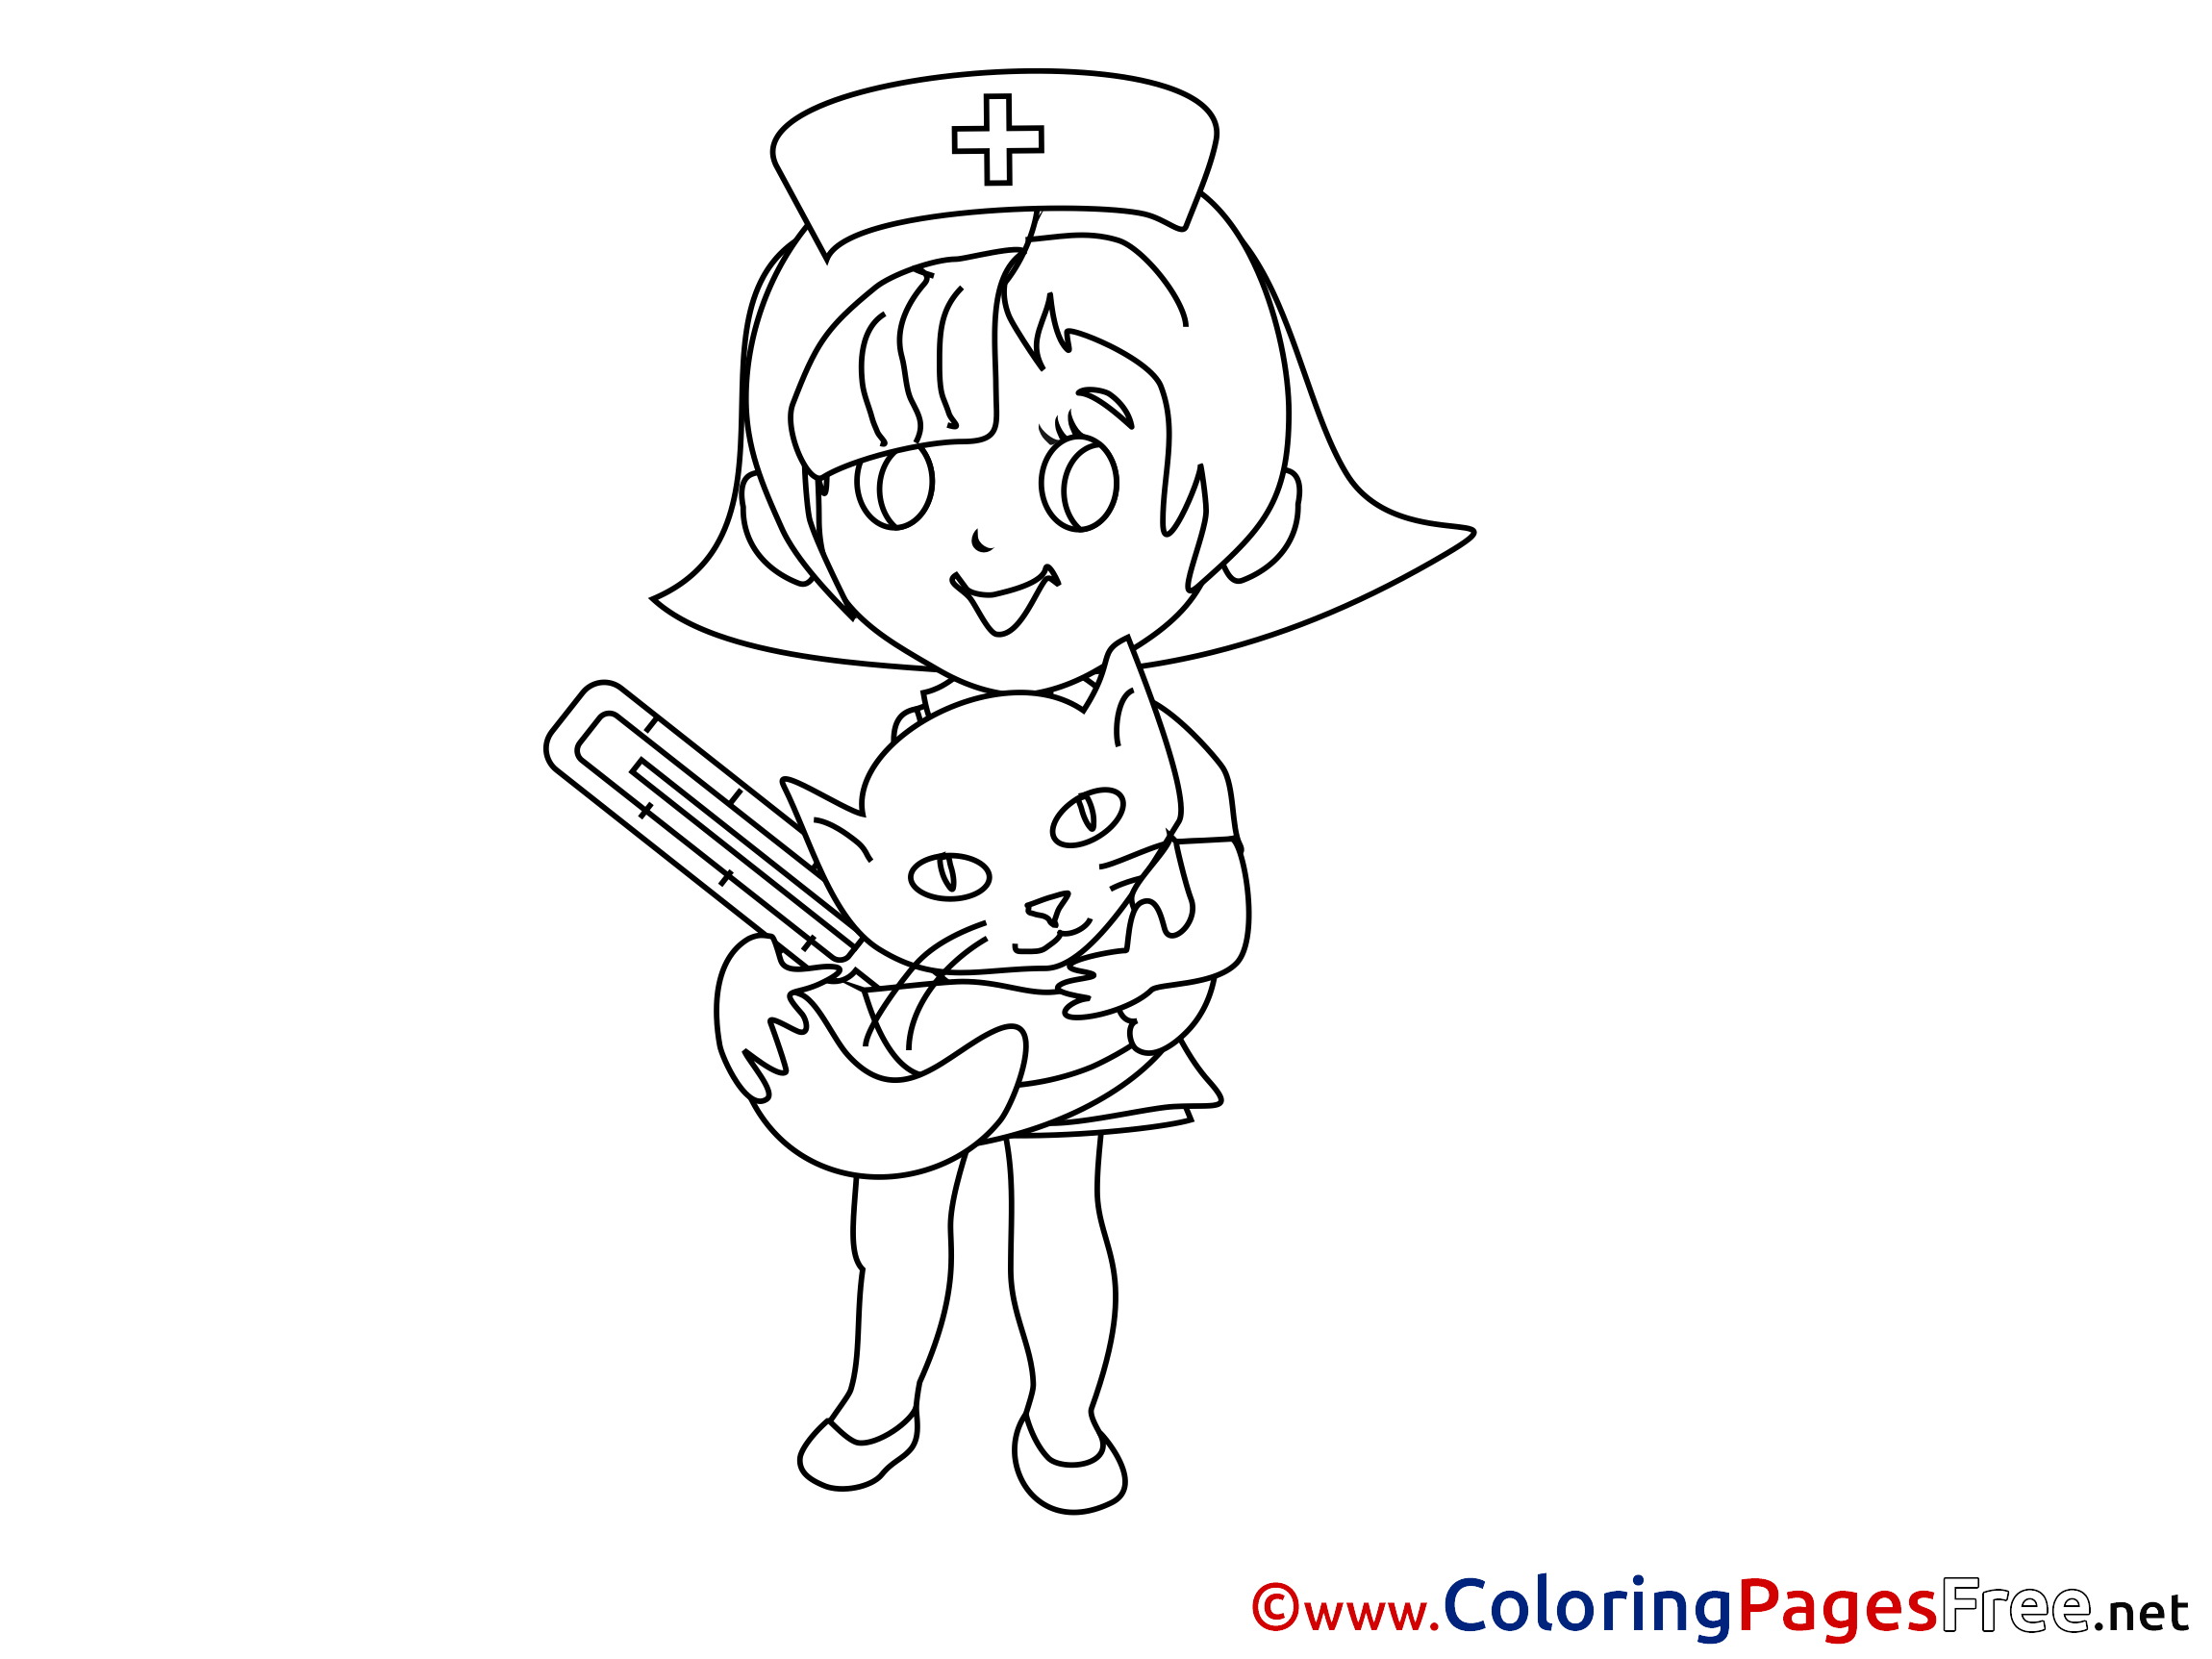 Free printable coloring pages veterinarians - Free Printable Coloring Pages Veterinarians 3